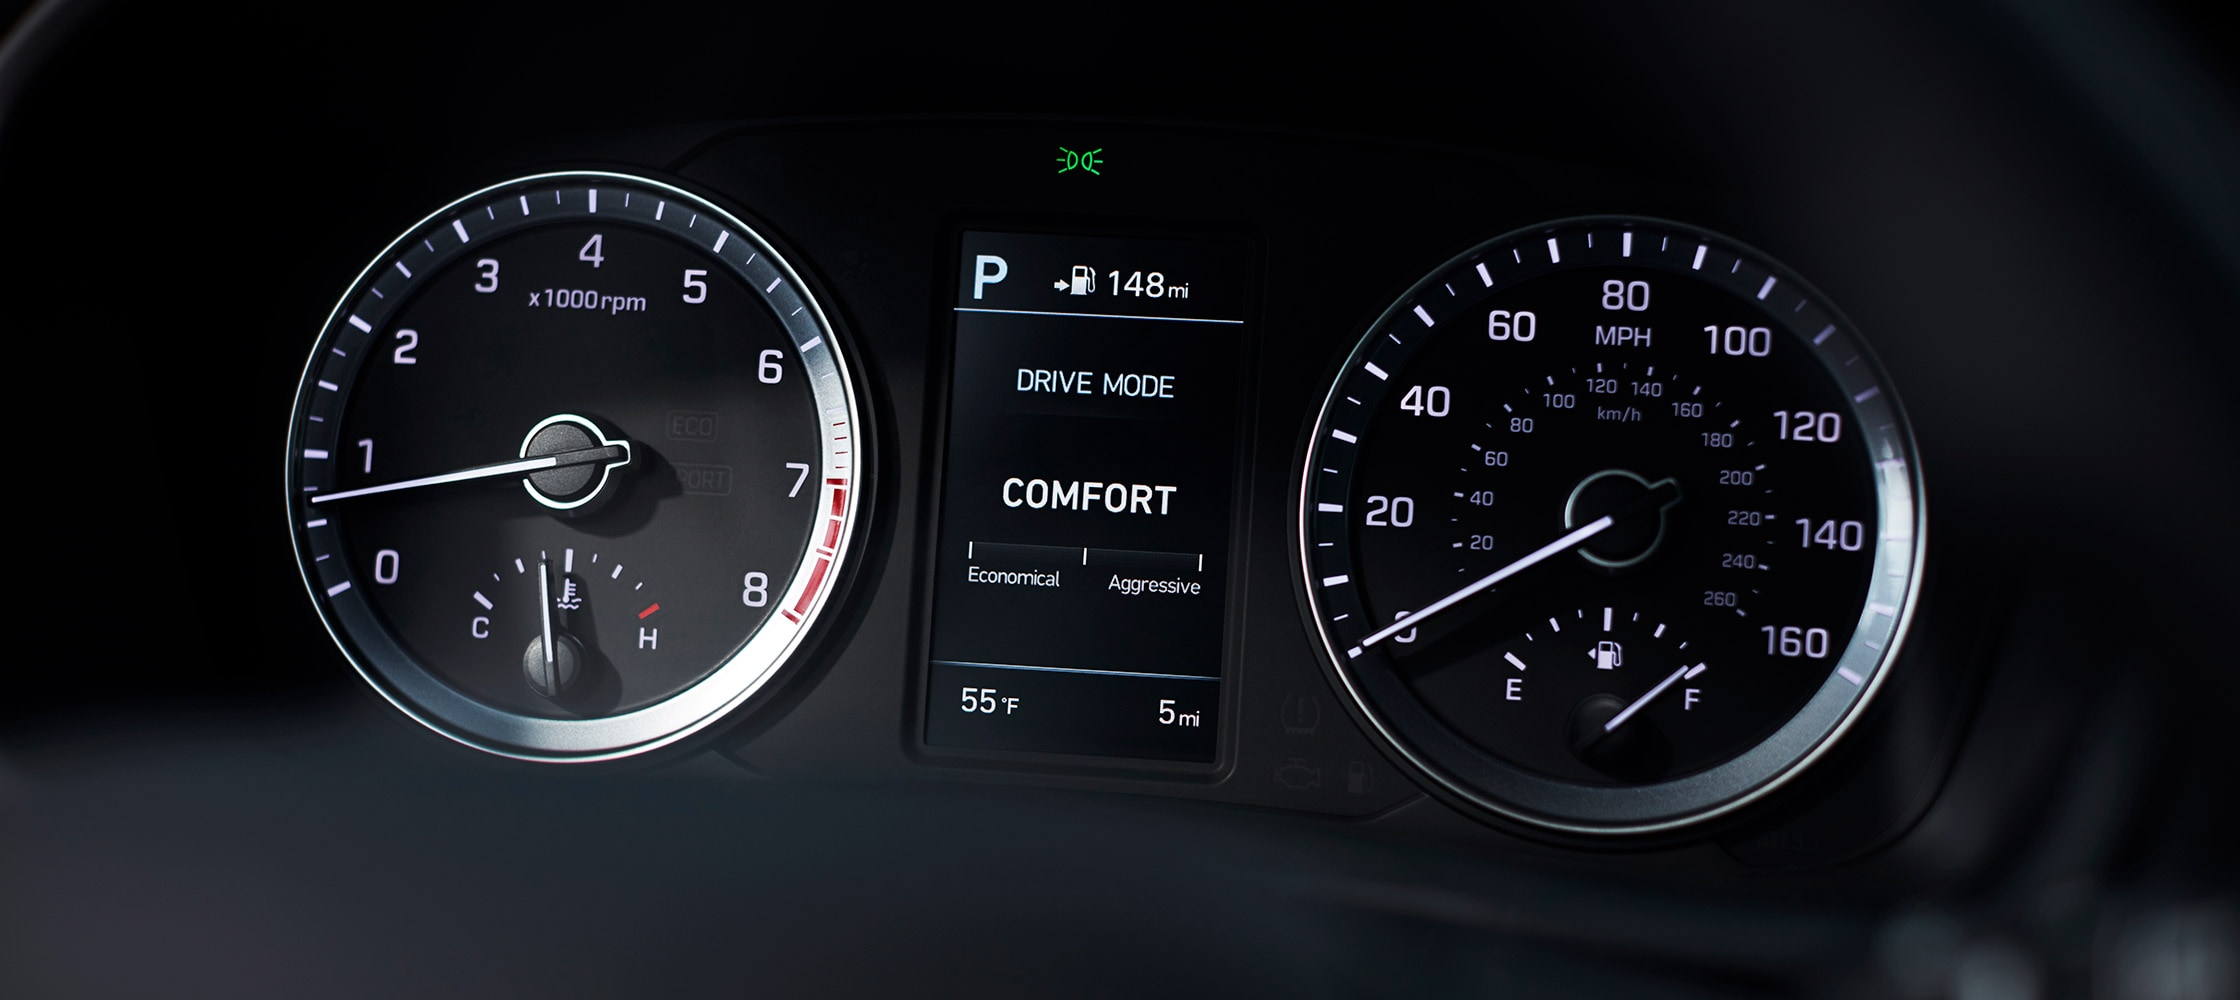 The speedometers in the Hyundai 2018 Sonata.